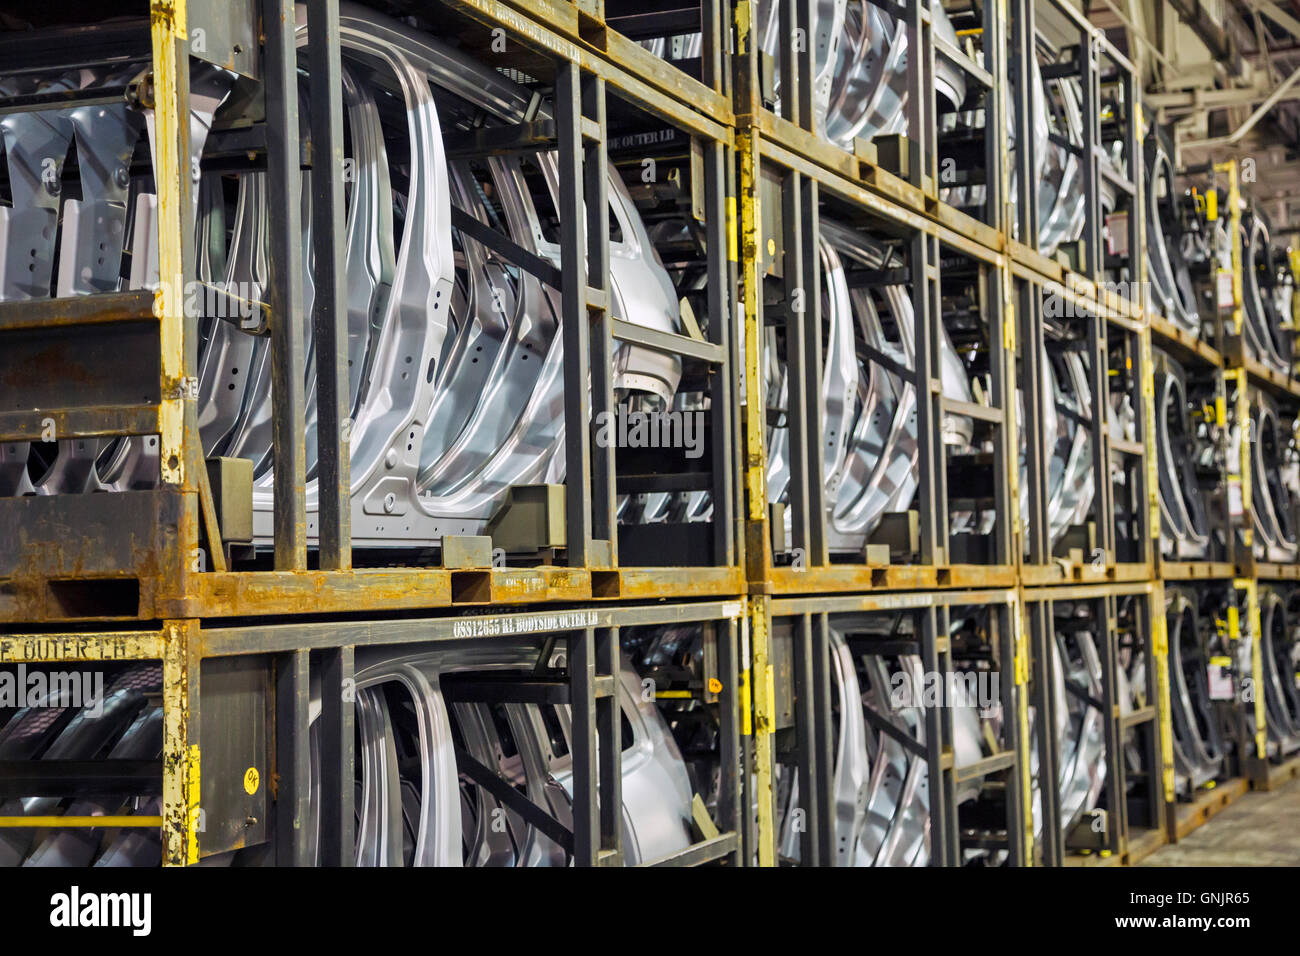 Sterling Heights, Michigan - Automobile door panels stacked in racks at Fiat Chrysler Automobiles' Sterling - Stock Image